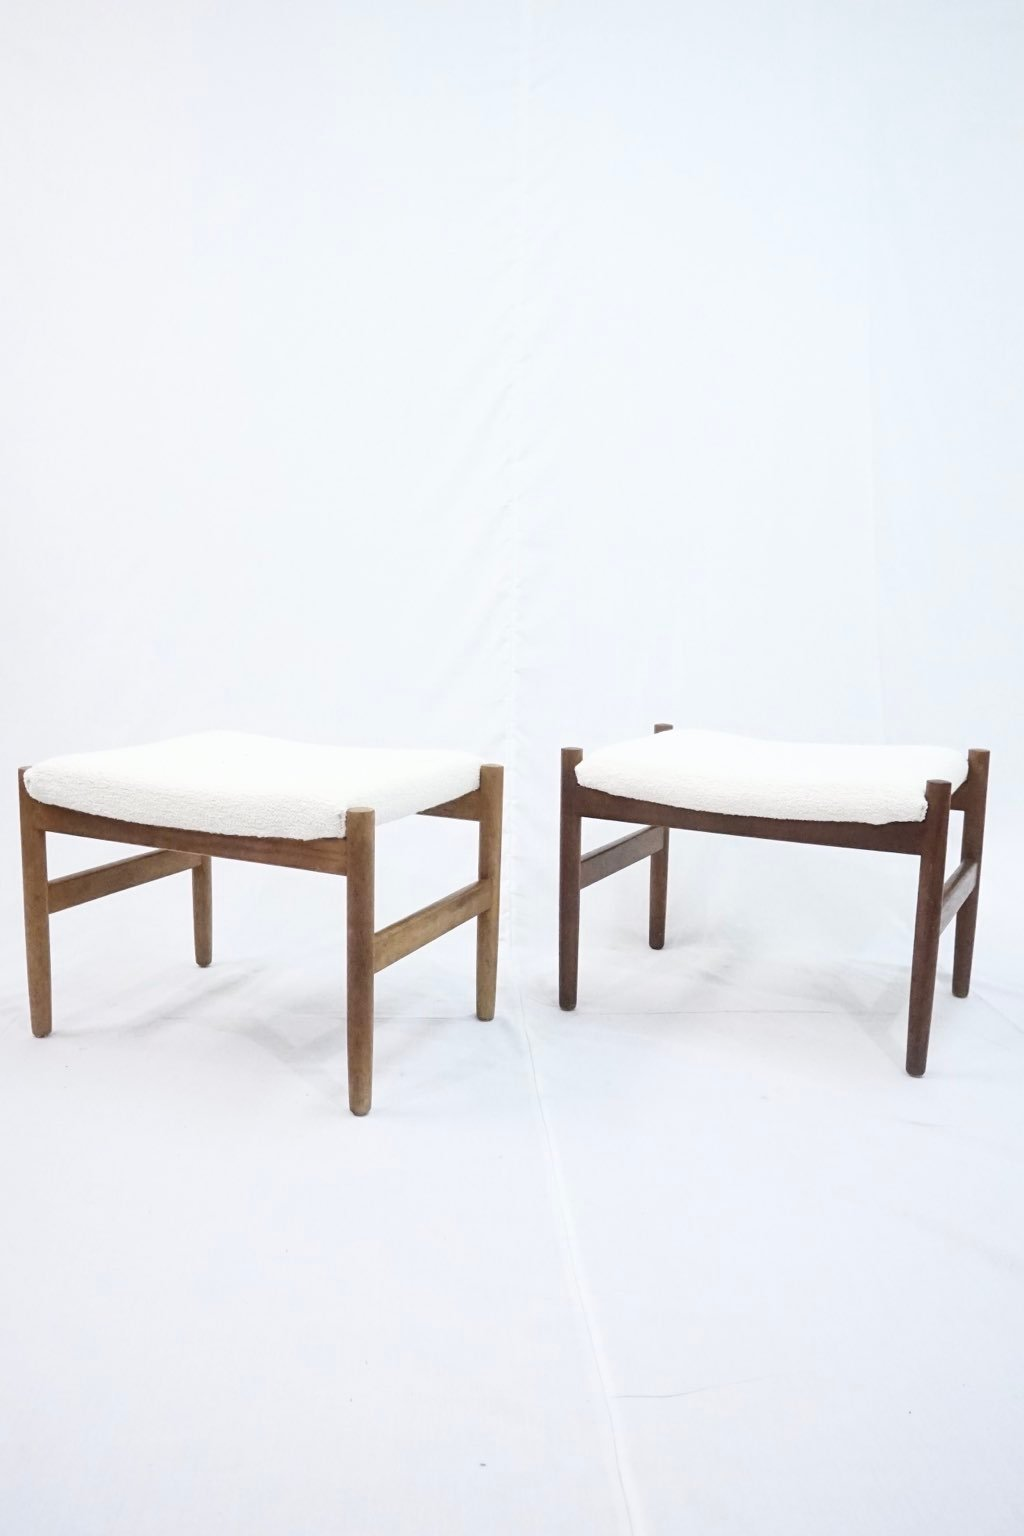 Spøttrup teak stools with boucle upholstery : Price upon request